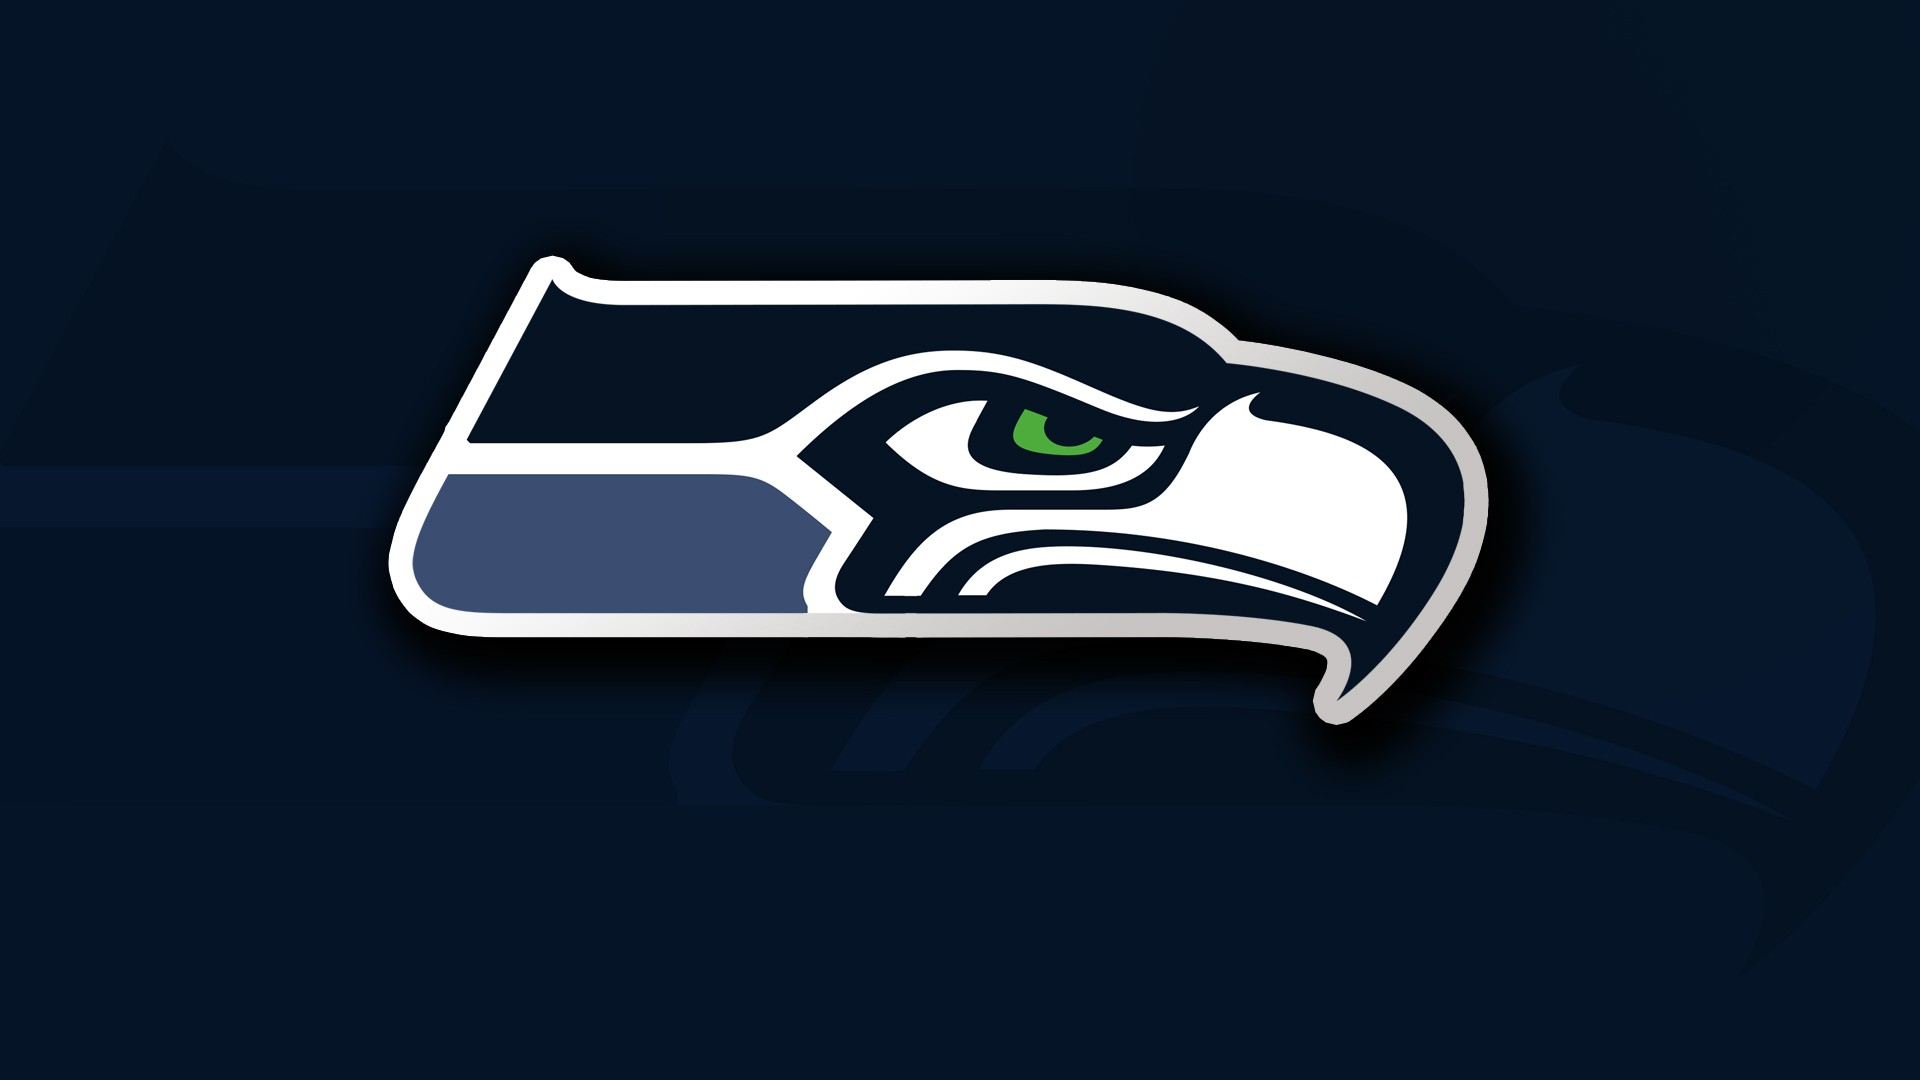 Seattle Seahawks Wallpaper Hd 2020 Nfl Football Wallpapers